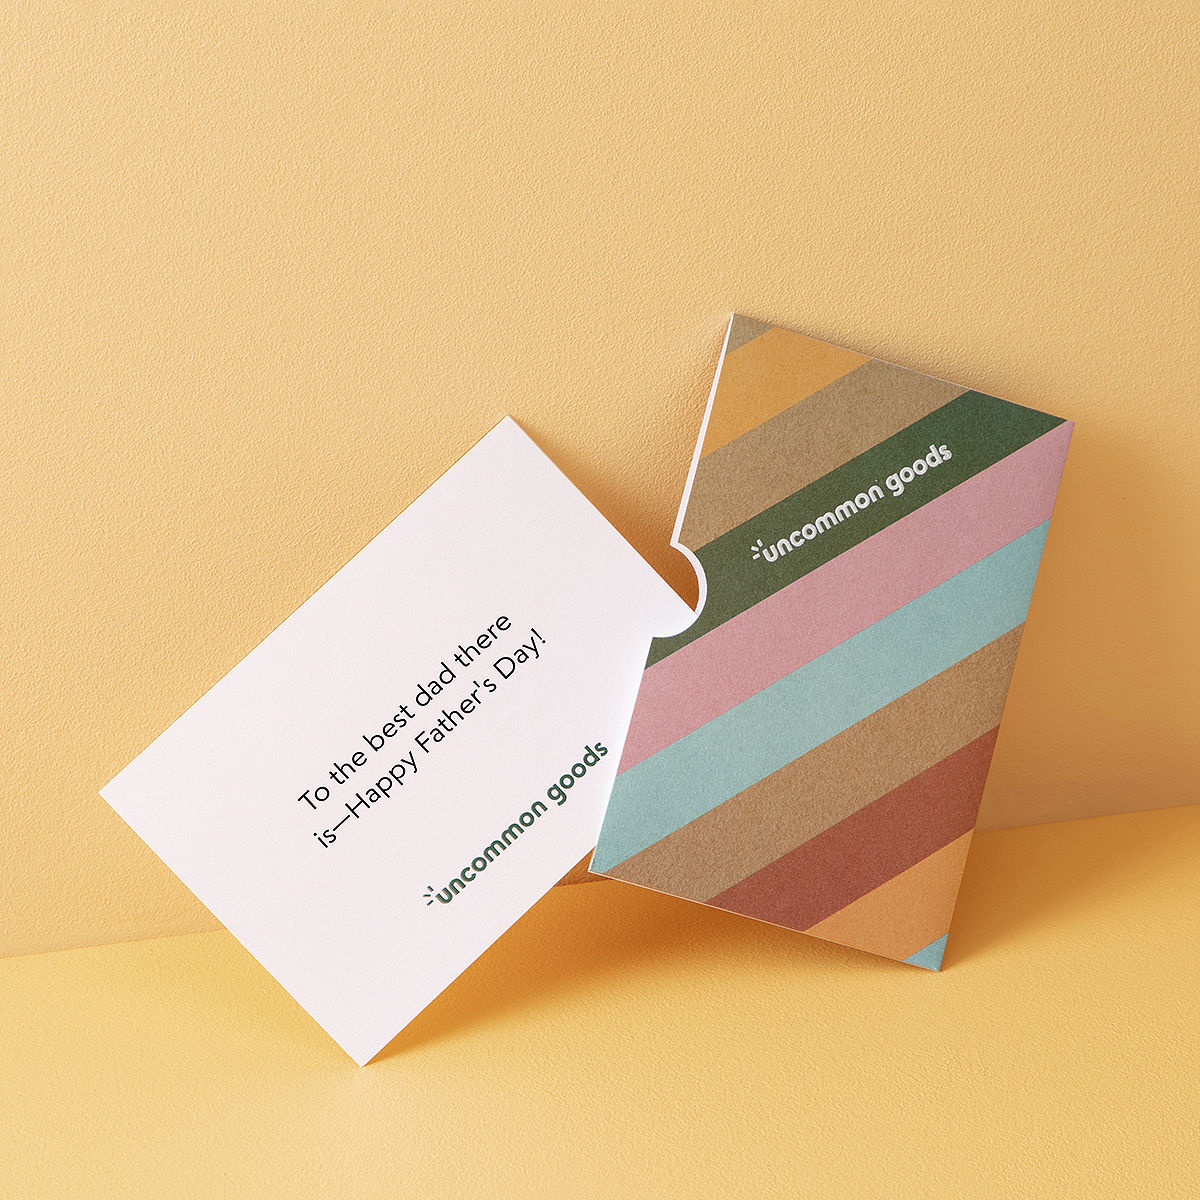 gift certificate gift card uncommongoods gift certificate 1 thumbnail